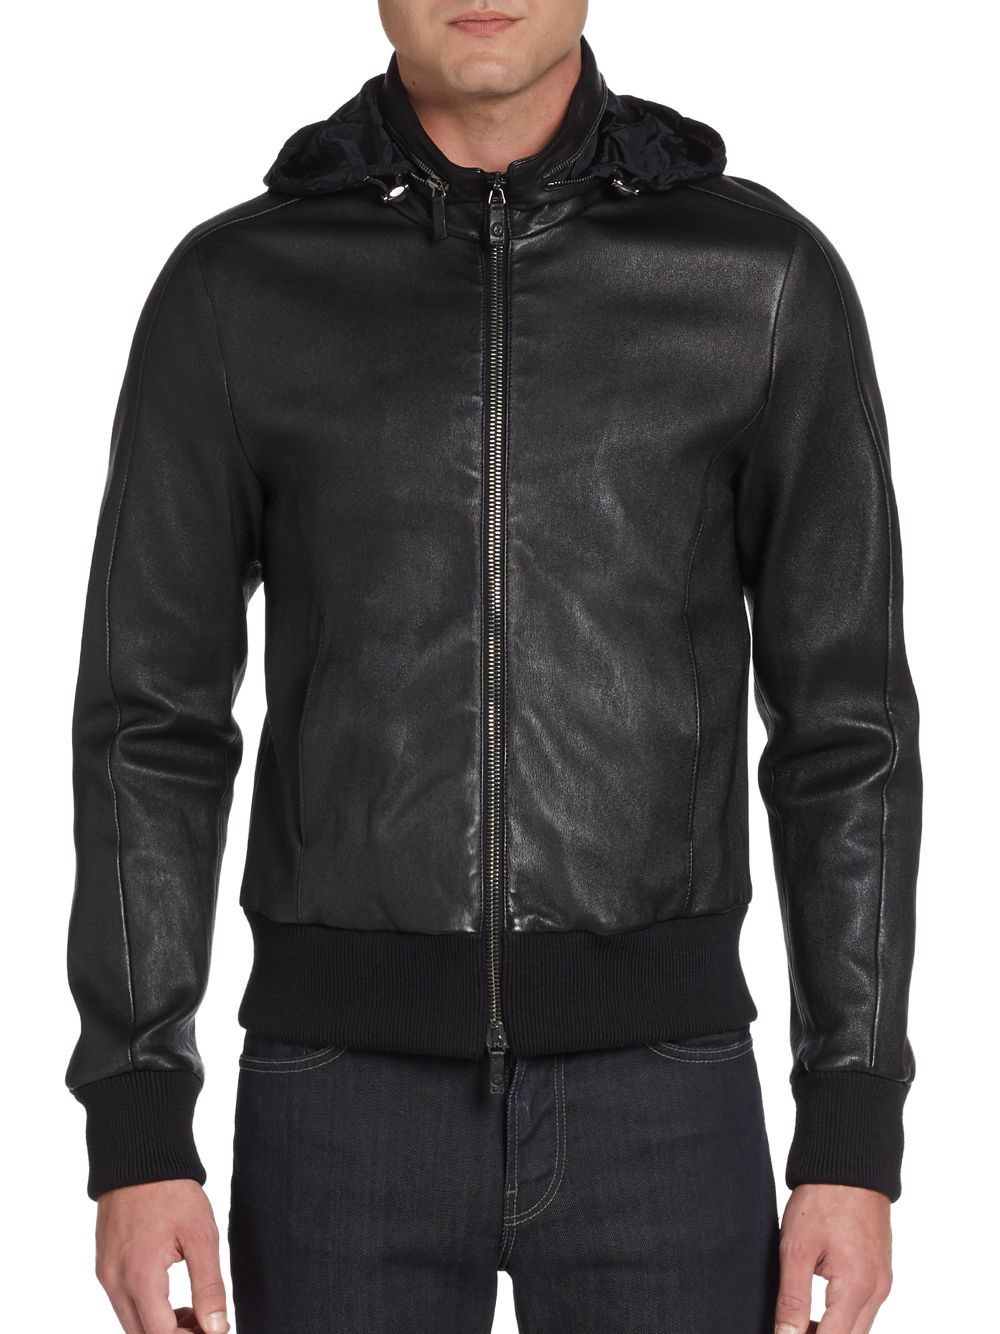 Giorgio armani Hooded Leather Bomber Jacket in Black for Men | Lyst